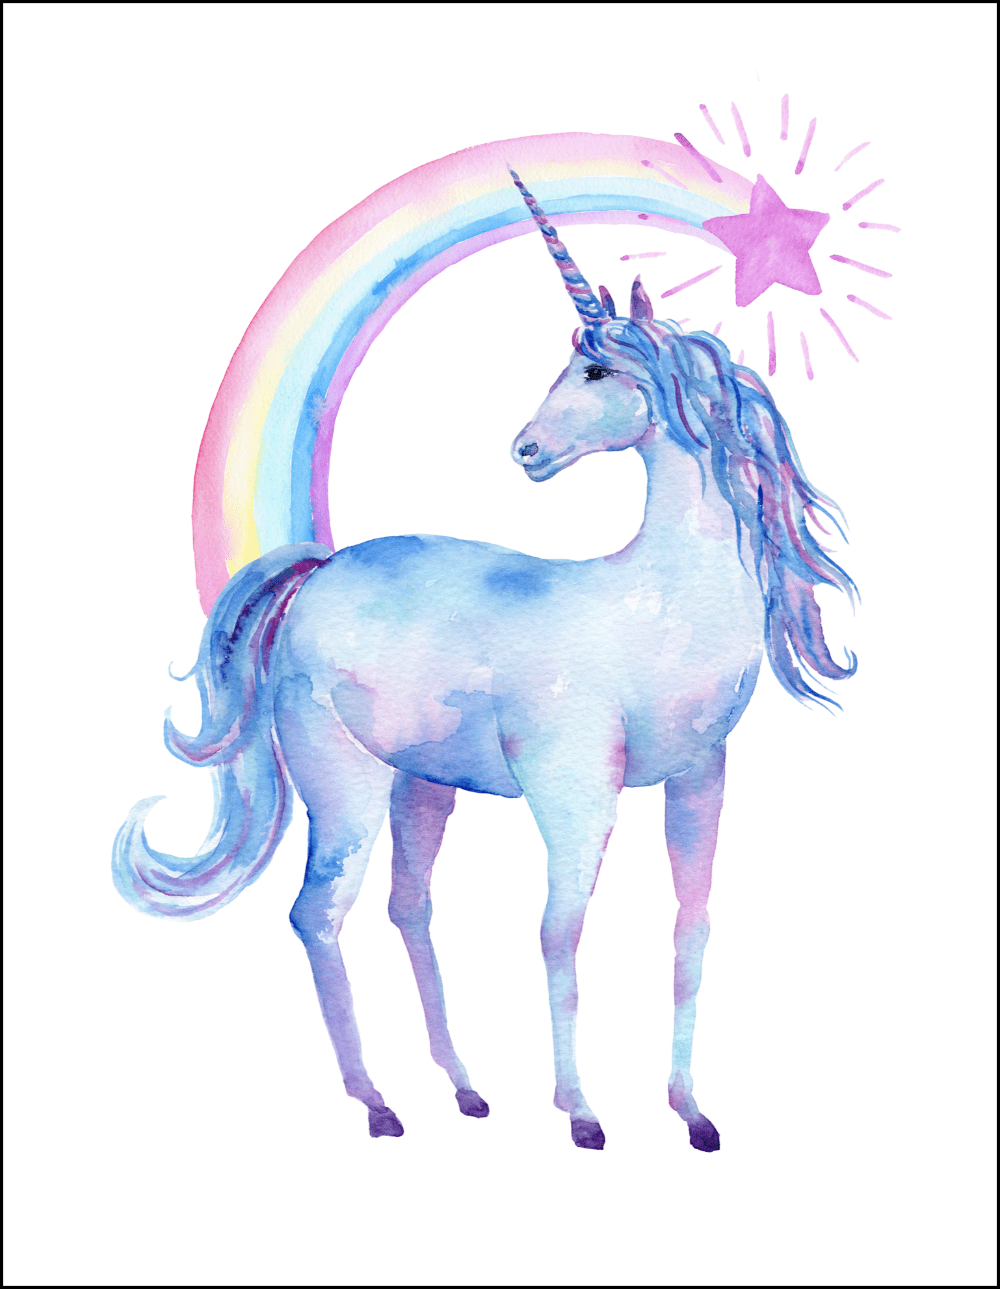 photo regarding Printable Pictures of Unicorns titled Totally free Printable Watercolor Unicorn Photos - Oh My Artistic